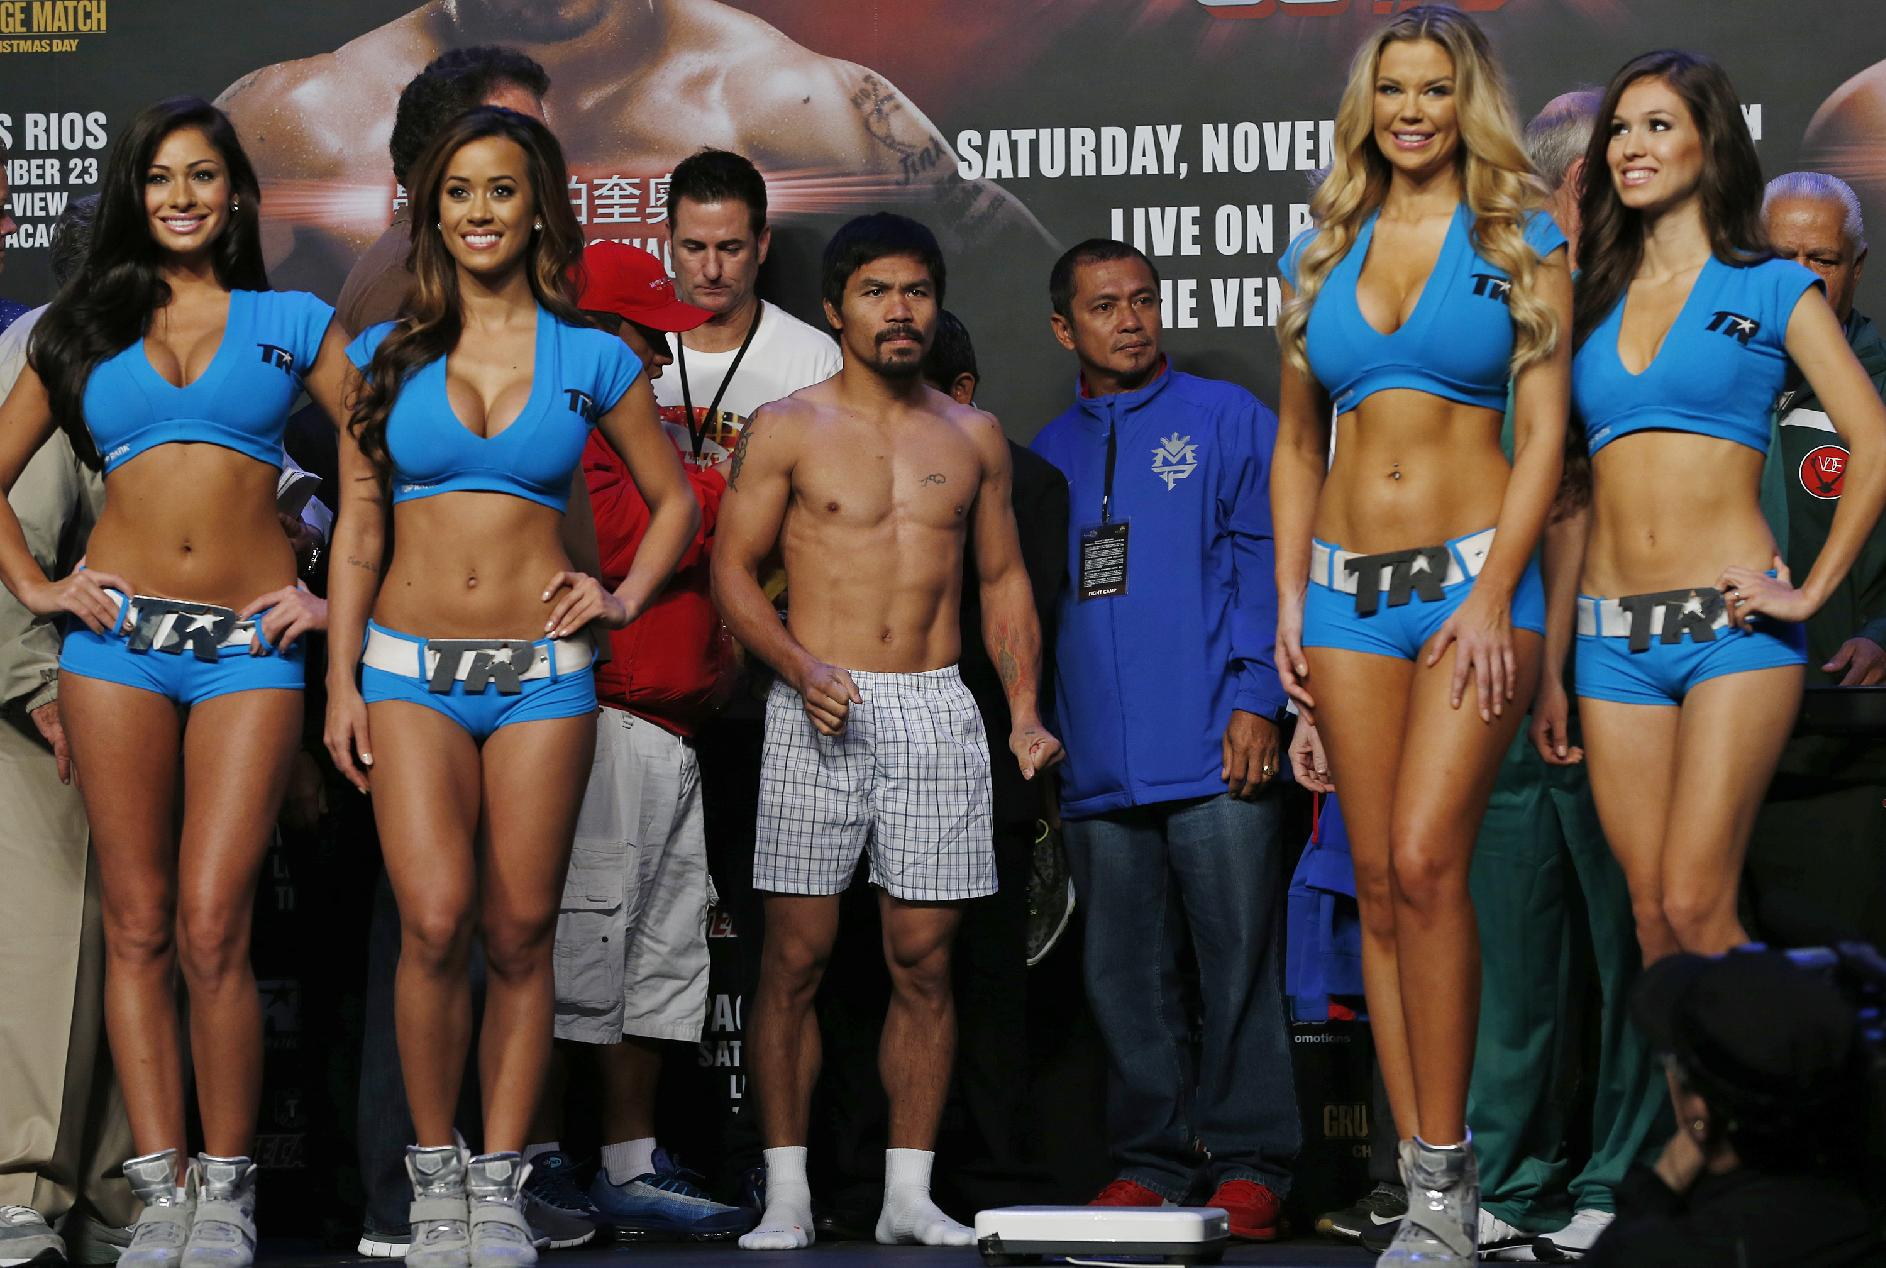 Filipino boxer Manny Pacquiao, center, poses for photos during the weigh-in for his welterweight fight against Brandon Rios of the United States at the Venetian Macao in Macau Saturday, Nov. 23, 2013. Pacquiao and Rios are scheduled to fight in their welterweight boxing match at the casino on Nov. 24